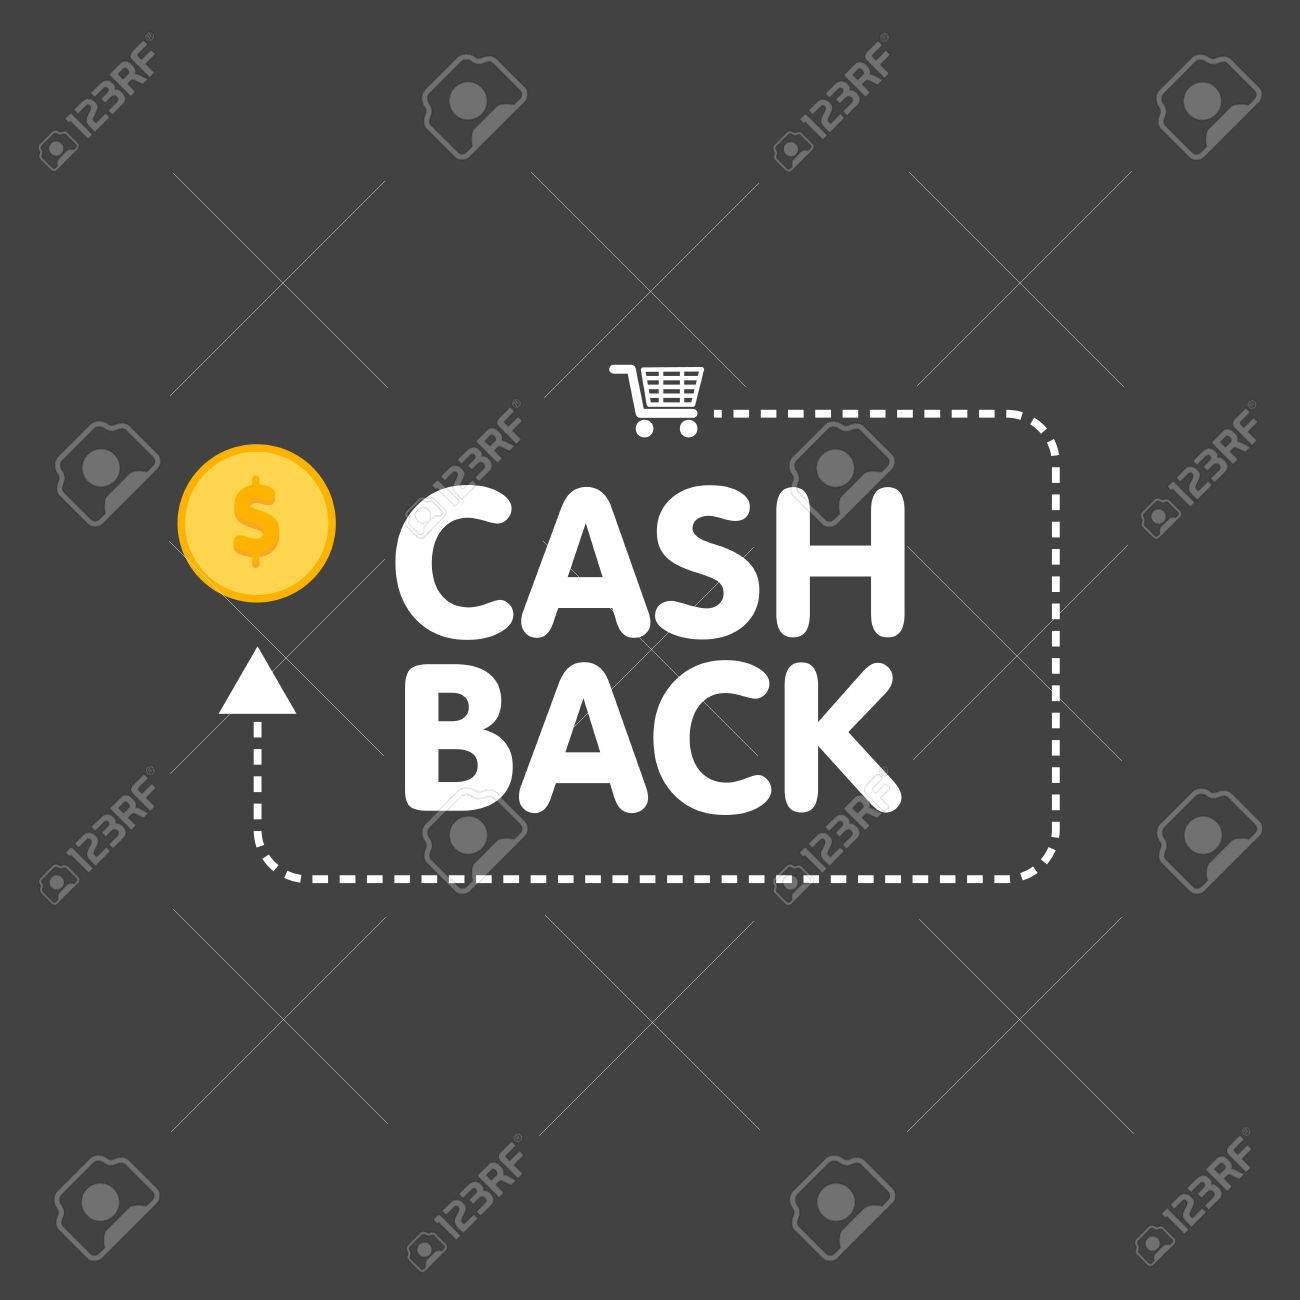 cashback concept logo vector illustration coins and arrow royalty free cliparts vectors and stock illustration image 75188570 cashback concept logo vector illustration coins and arrow